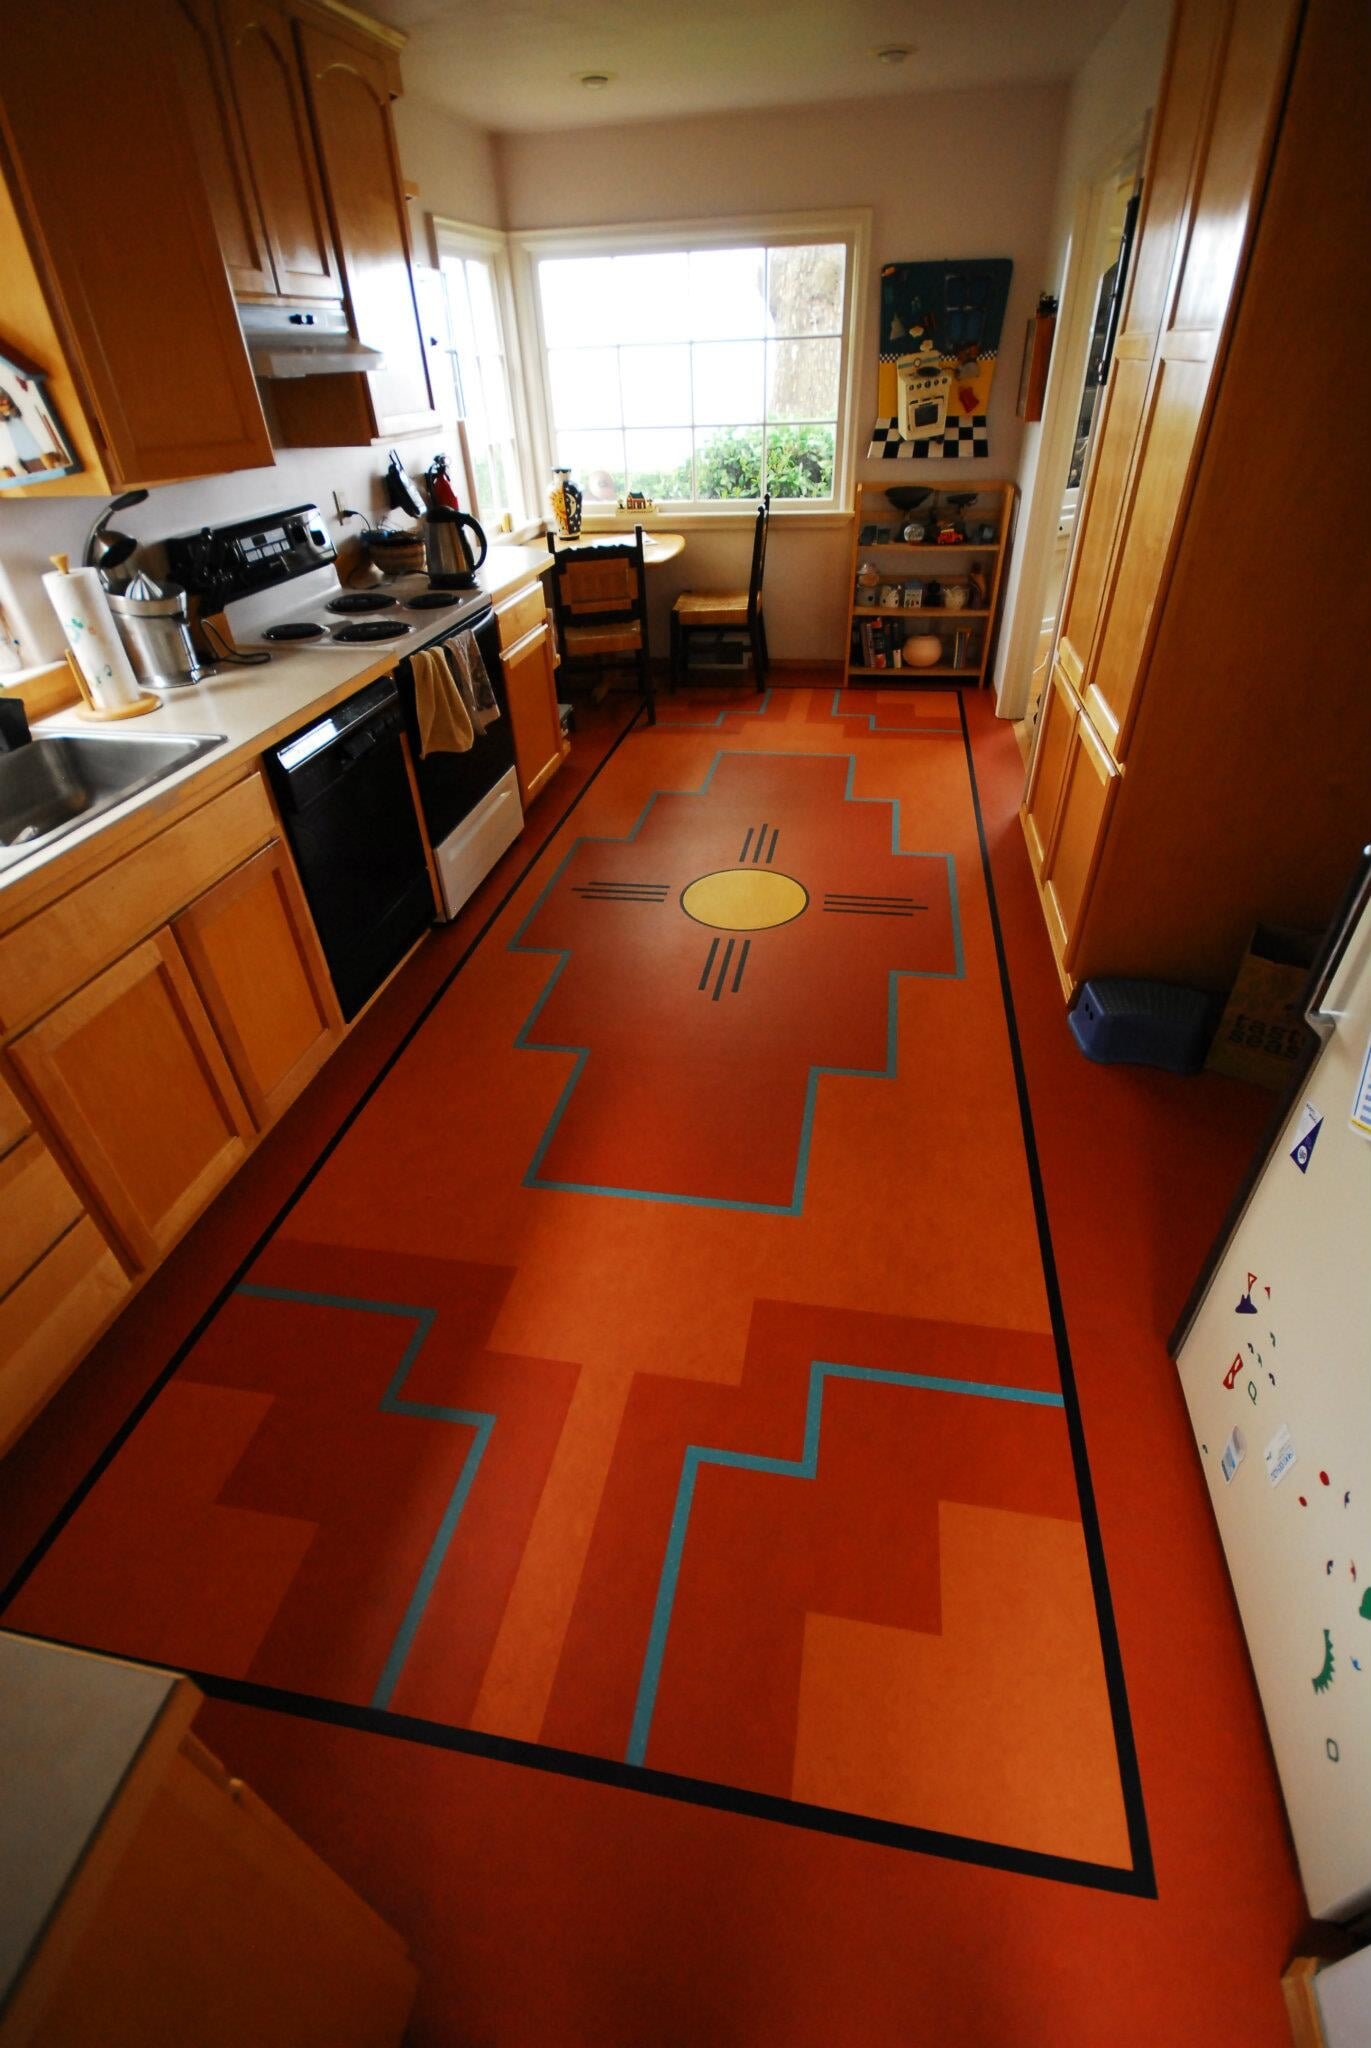 Vinyl flooring from LeBlanc Floors & Interiors in Bellevue, WA